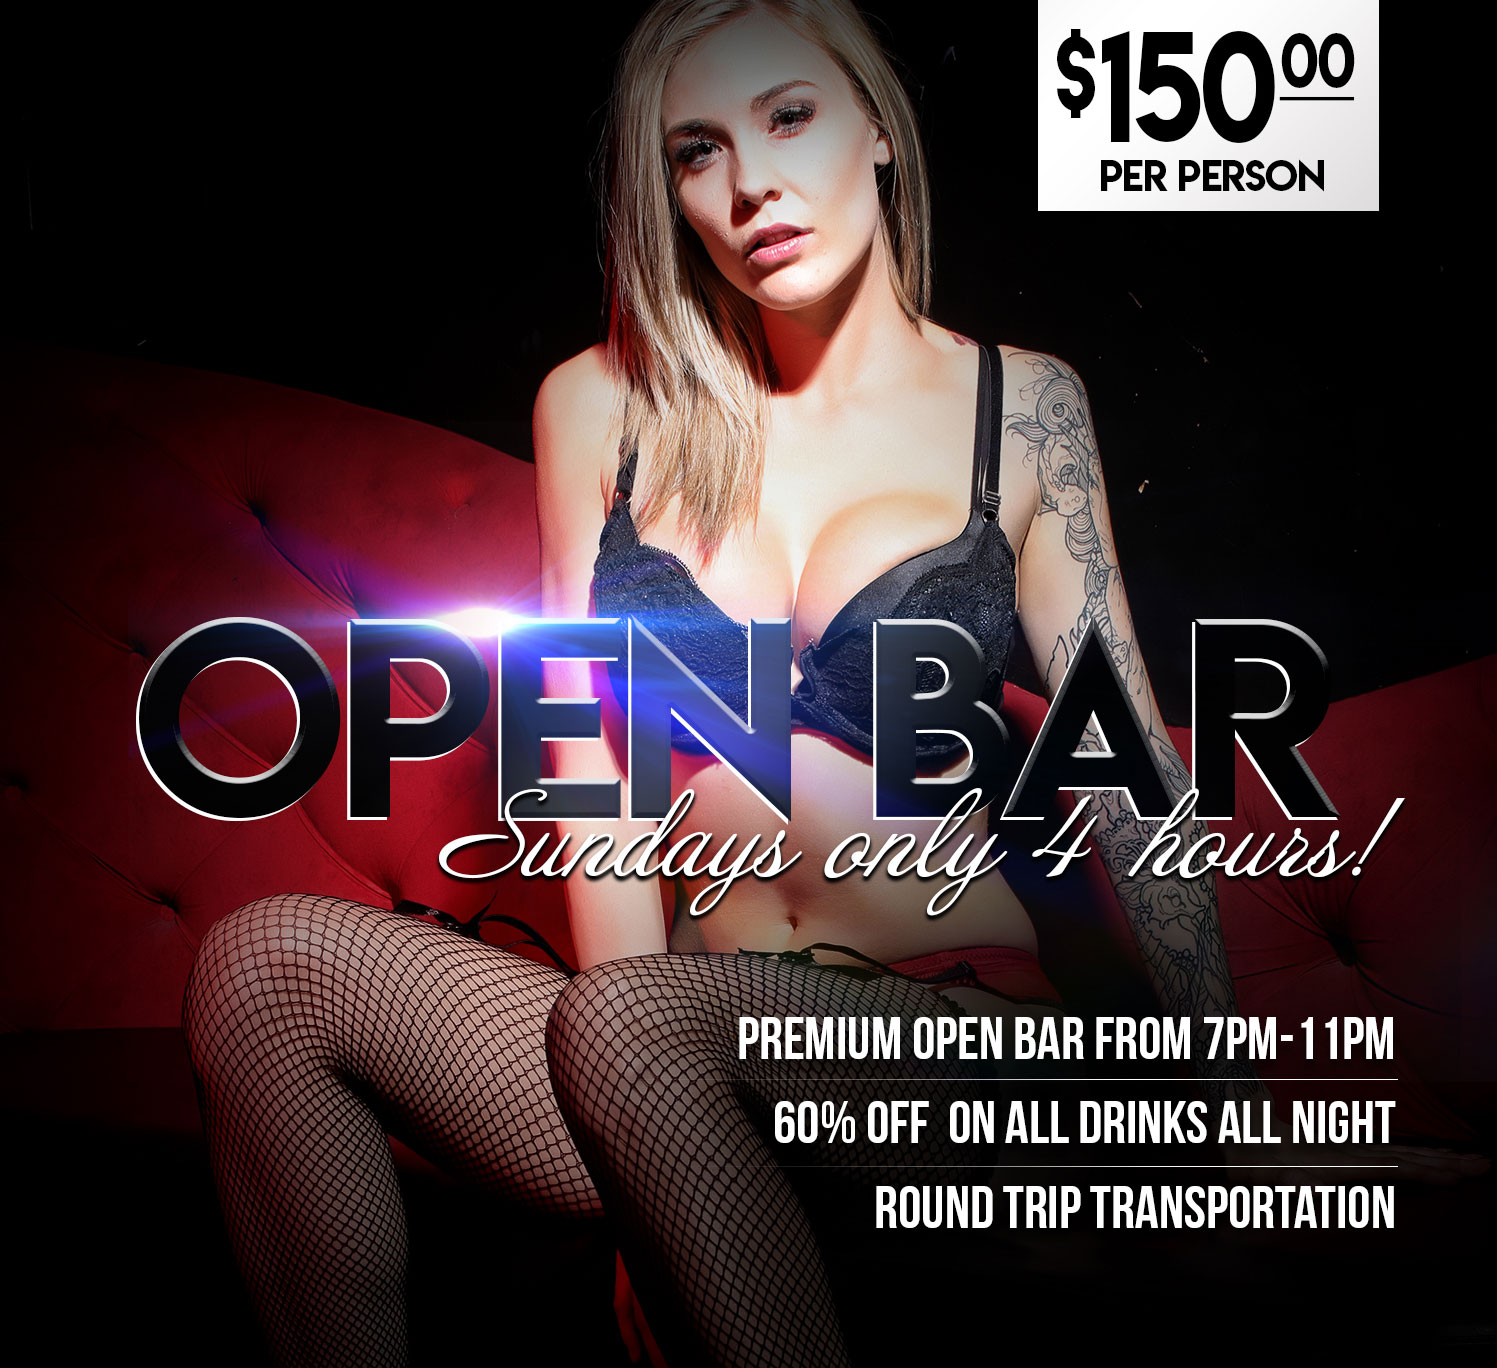 Hustler Club Las Vegas - Open Bar Package - Sundays Only (4 Hours)